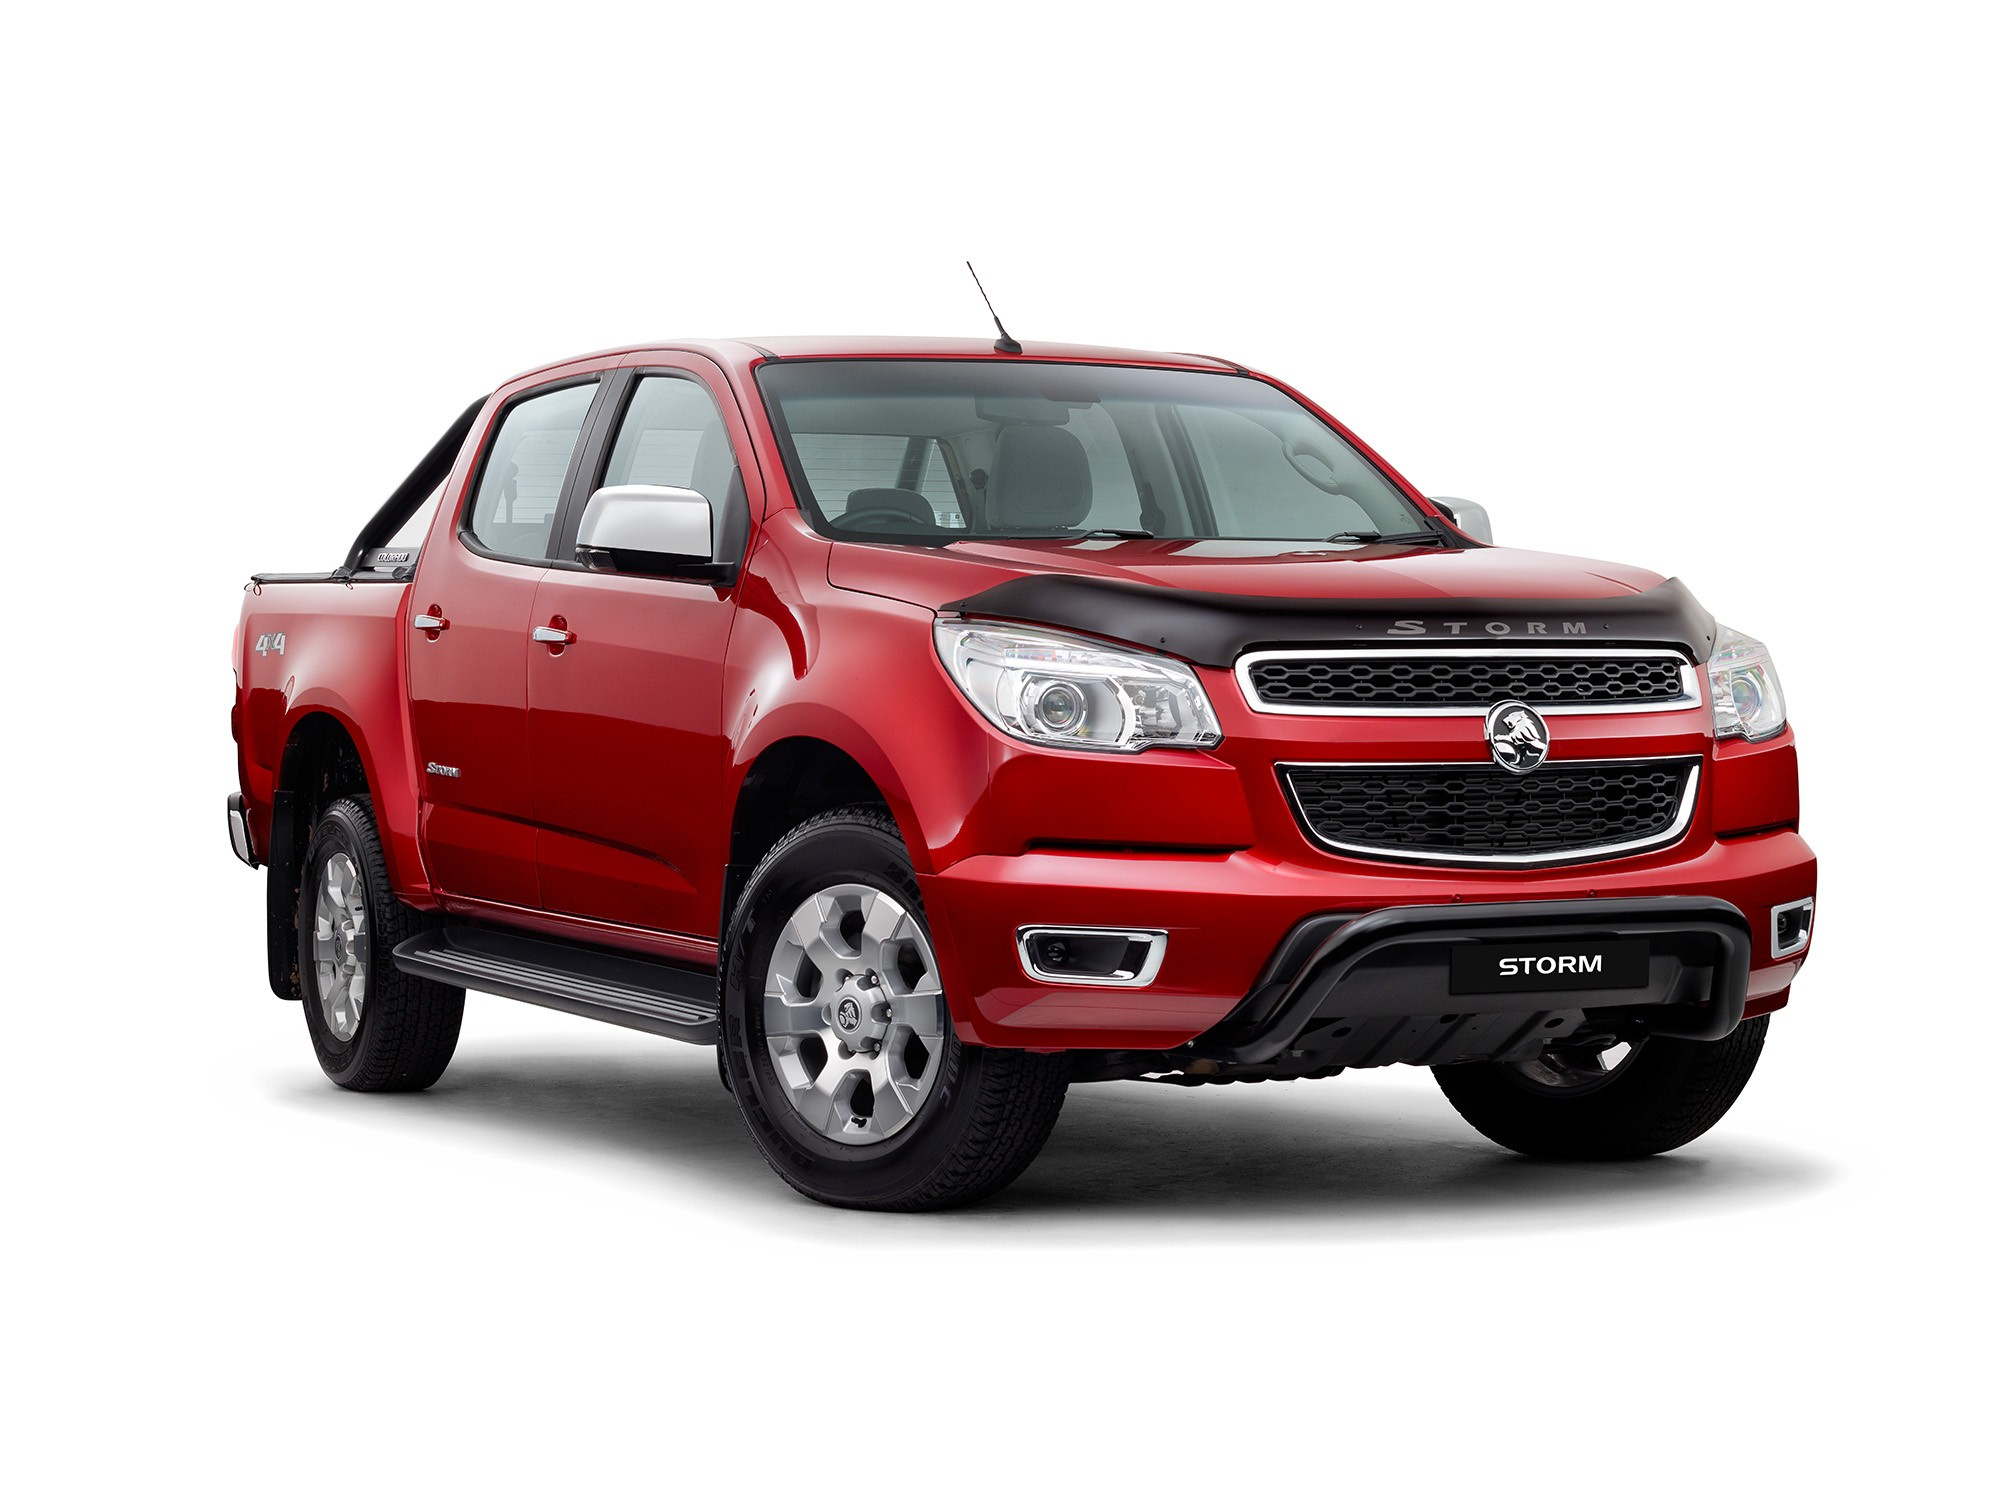 2017 holden colorado wiring diagram images deville wiring diagram 2015 holden colorado storm is a special edition pickup truck from